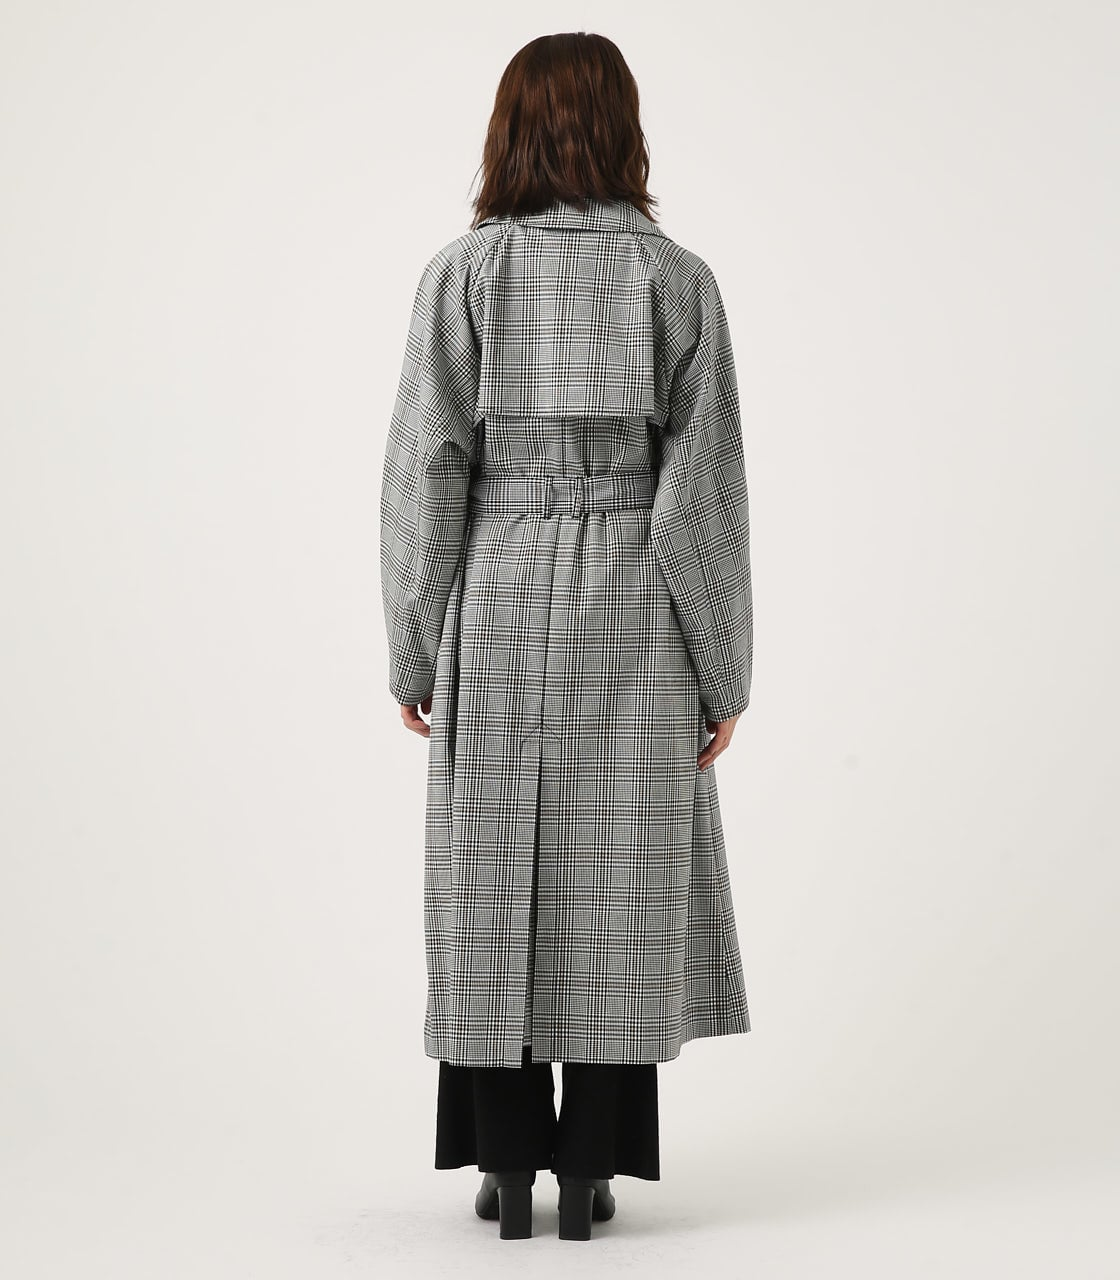 【AZUL BY MOUSSY】VOLUME SLEEVE LONG TRENCH COAT 詳細画像 柄BLK 7